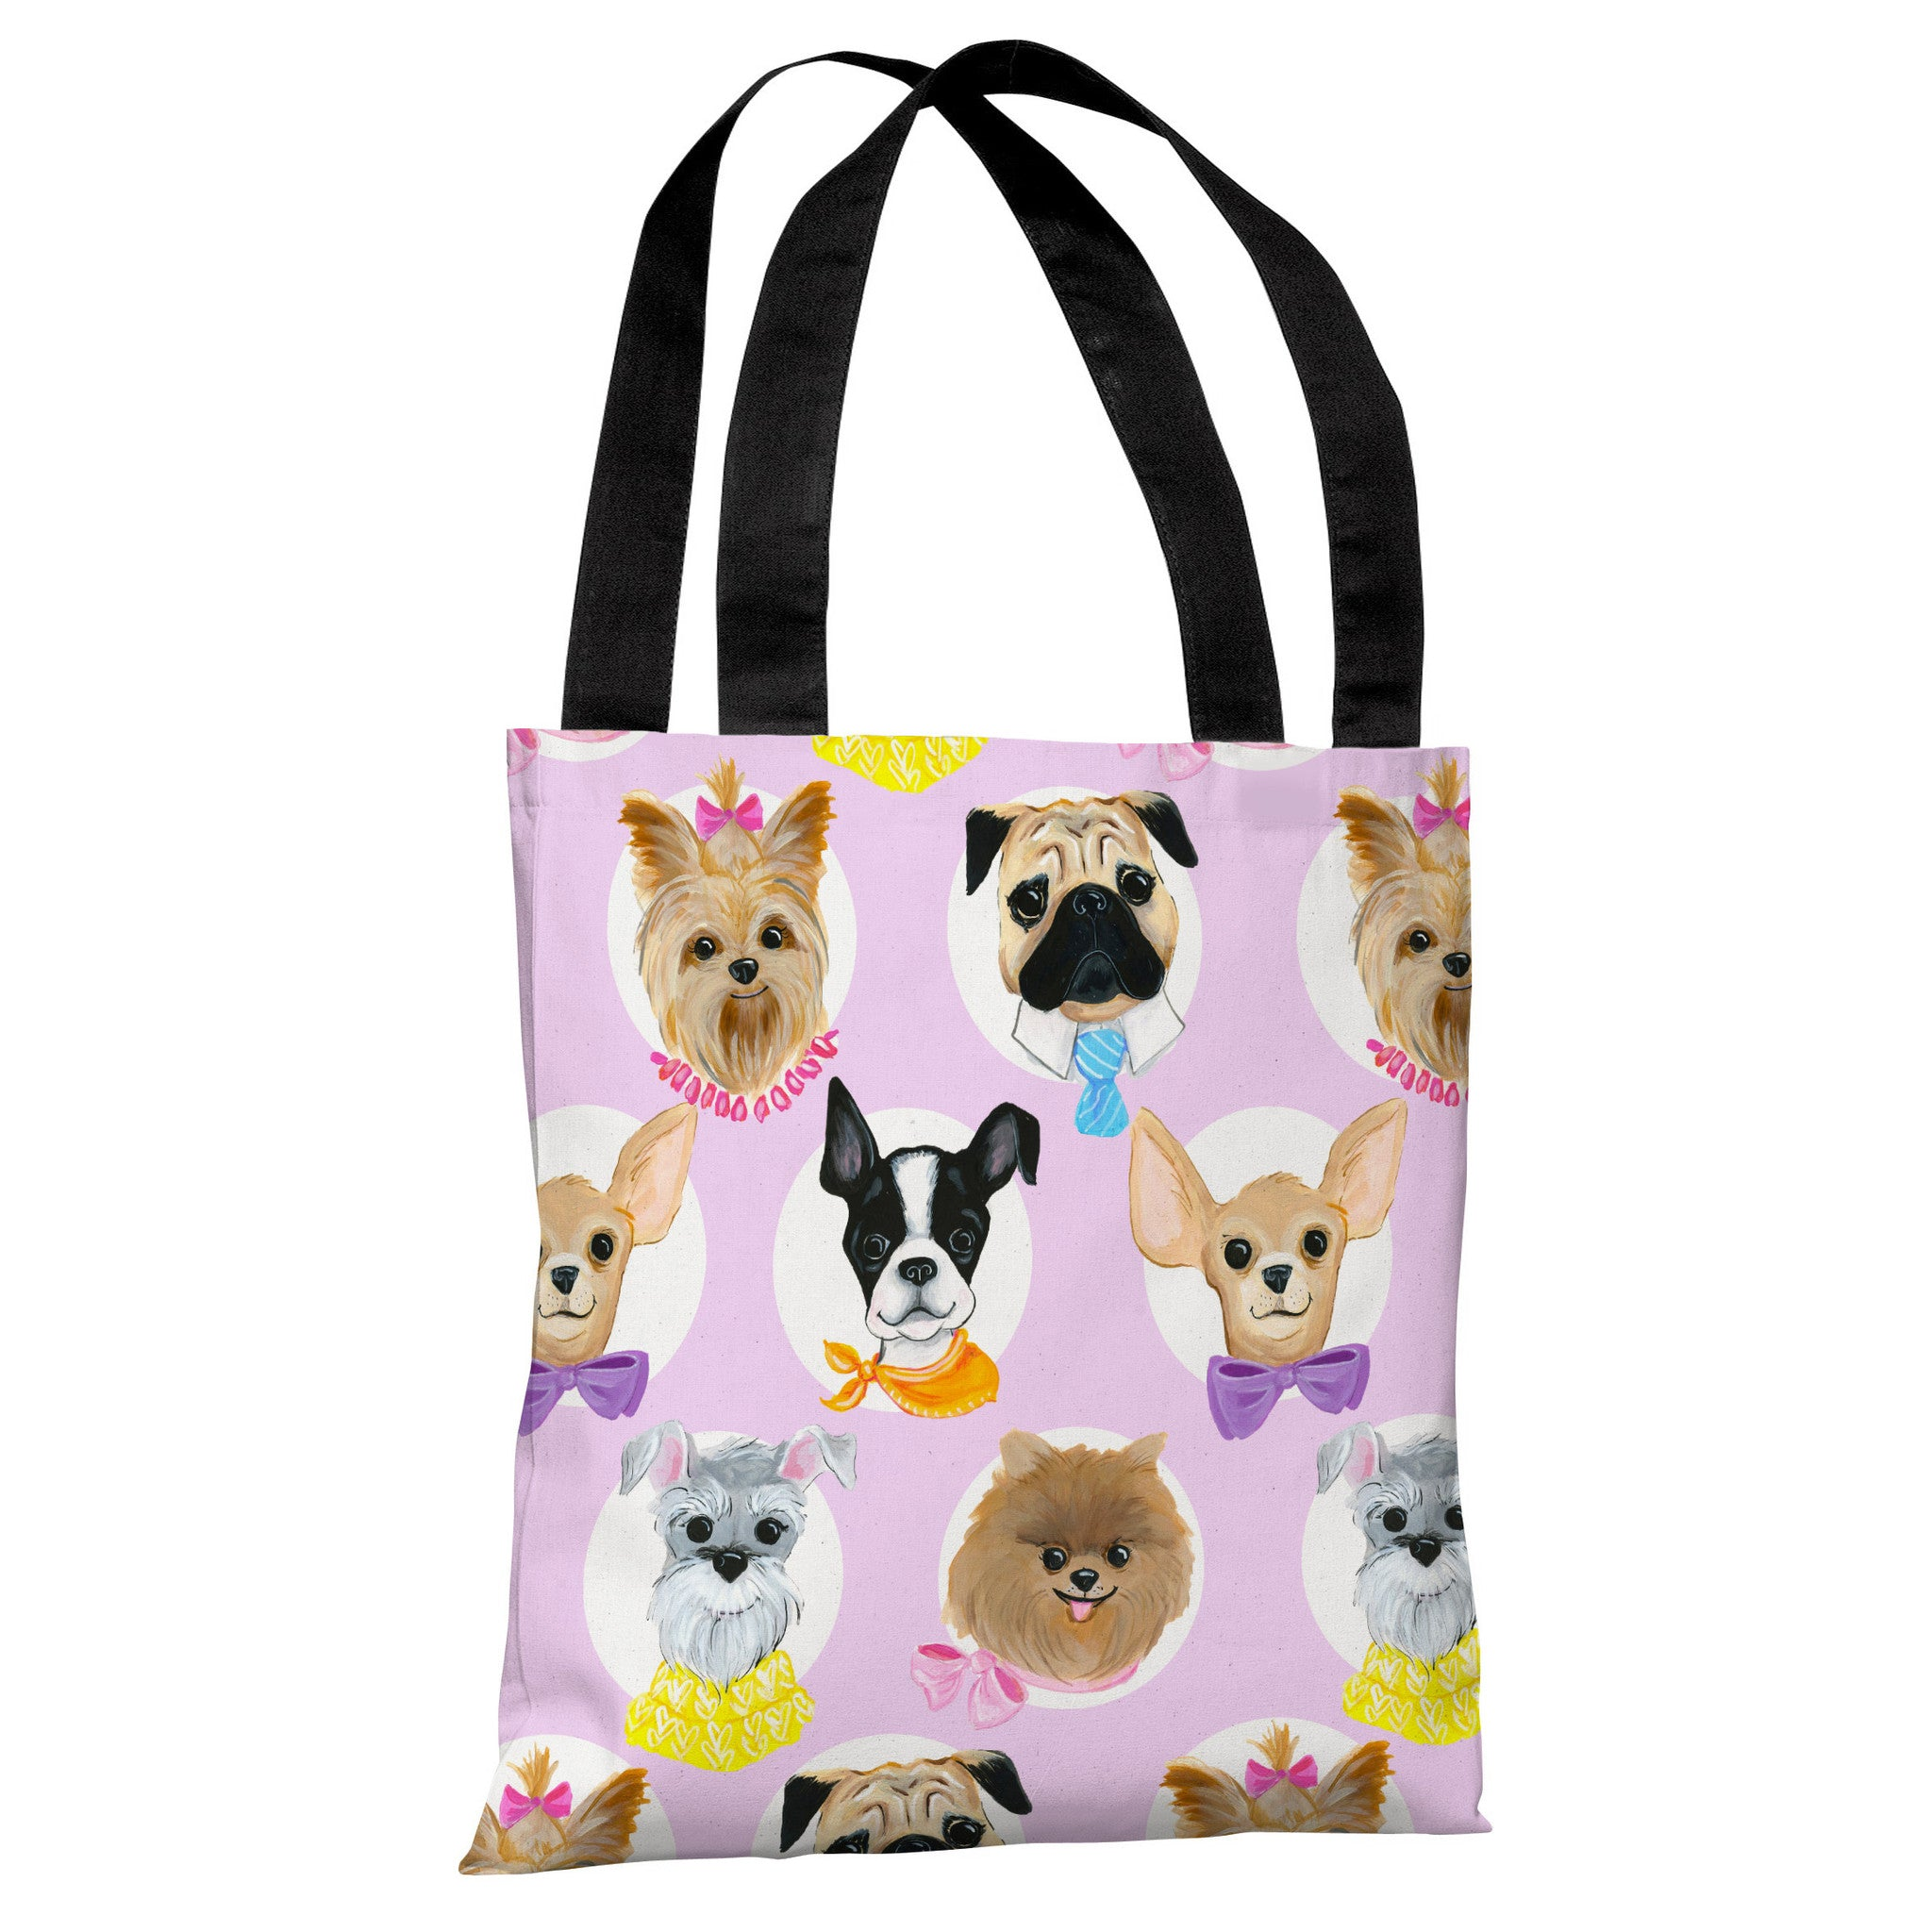 Art Bag Nyc Love From Nyc 10 Dogs Pink Multi Tote Bag By April Heather Art